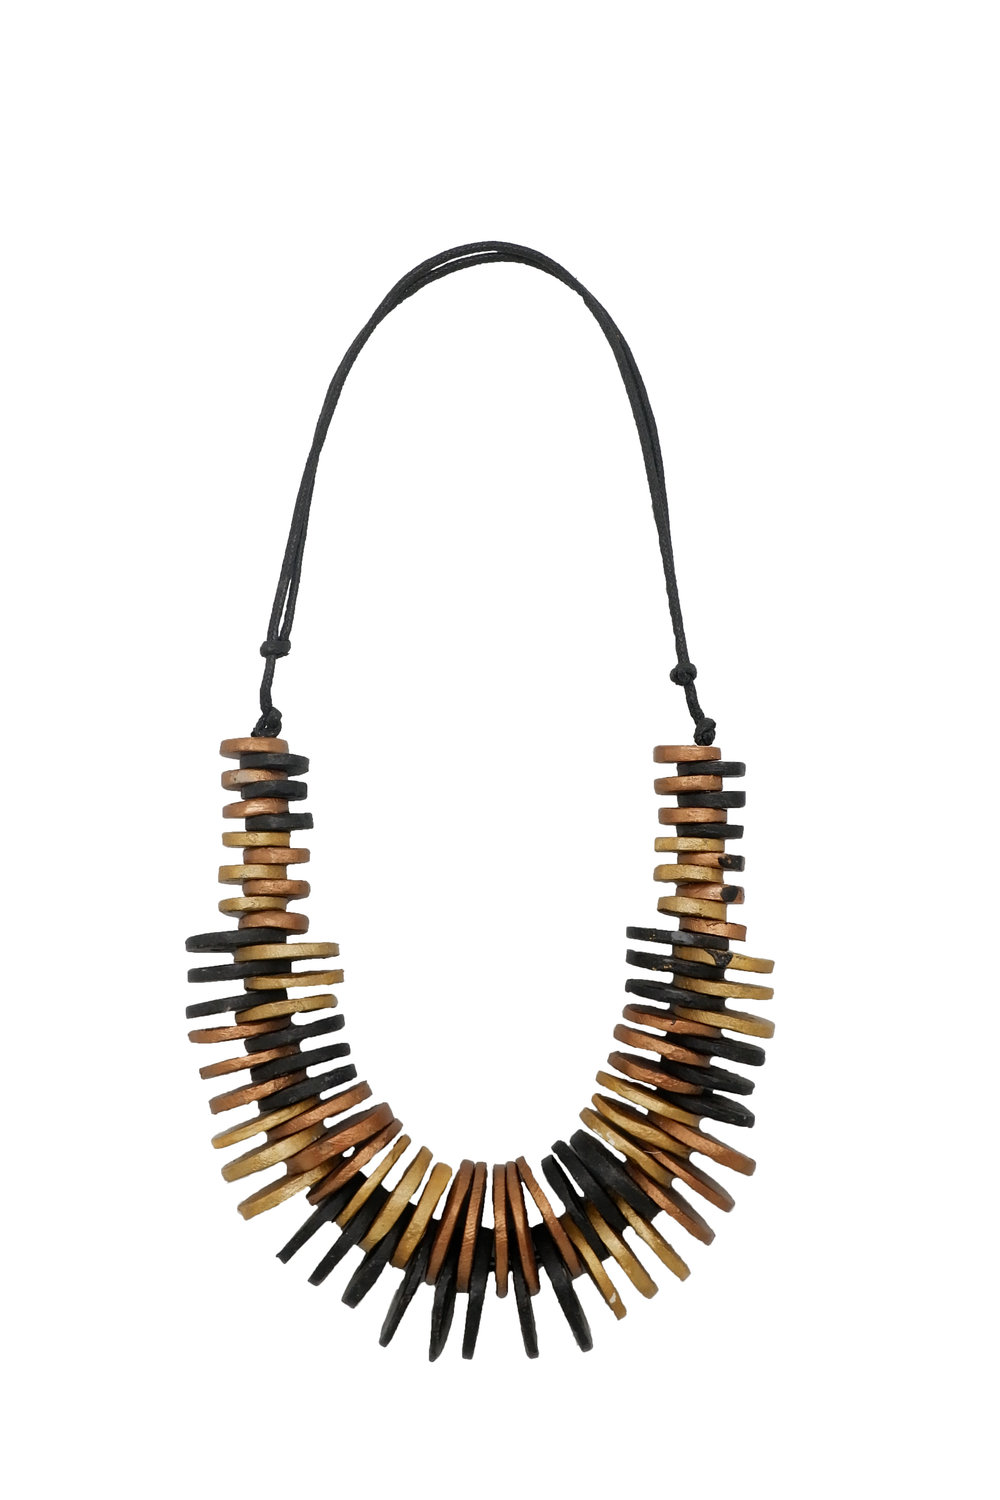 Floreia's necklace collection is a varied and vibrant selection of exceptionally designed pieces adorned with the brand's renowned handmade necklaces.